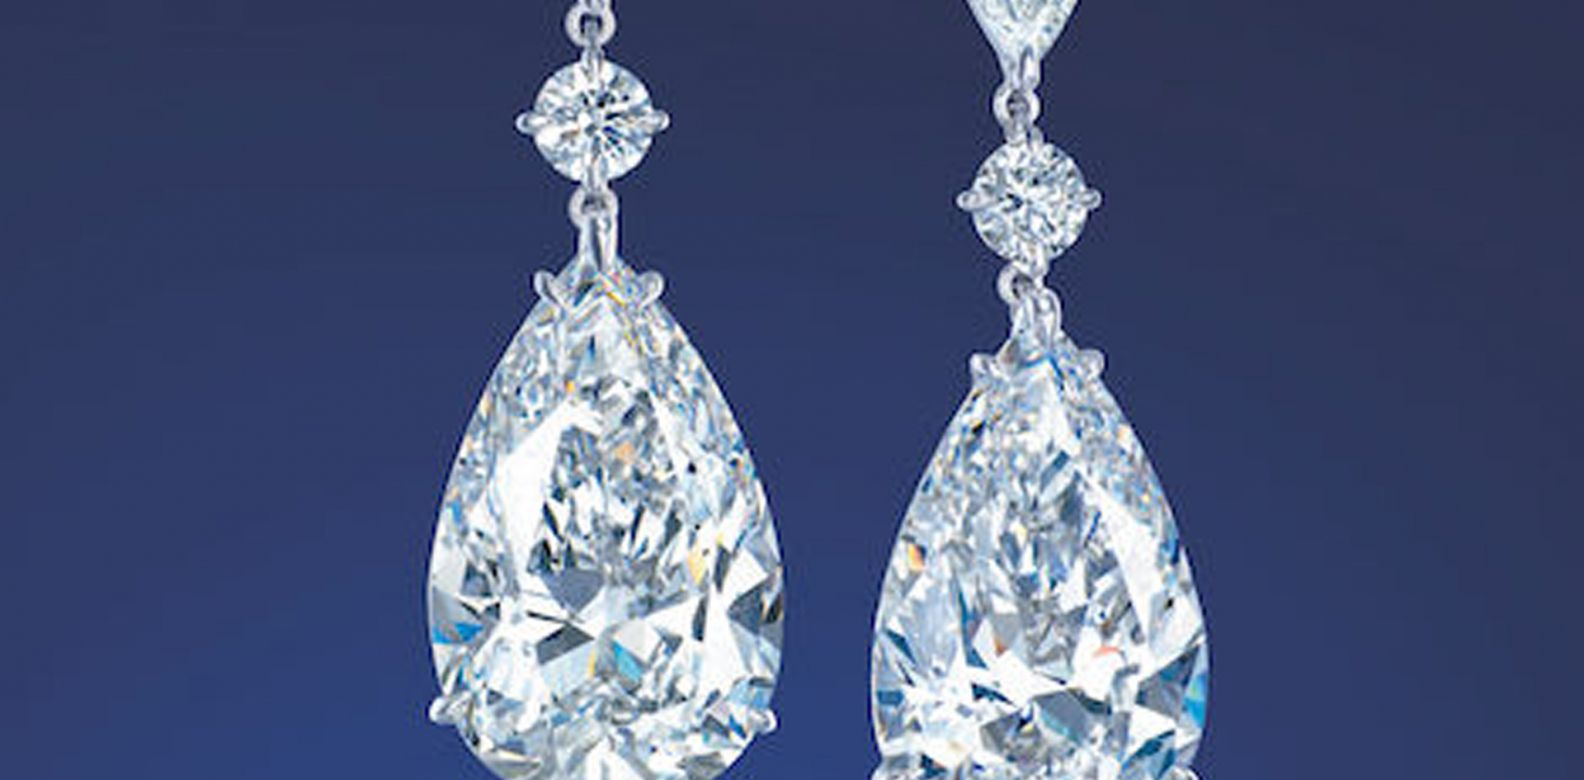 Pear-shaped diamond ear pendants. (Photo: Courtesy of Christie's)